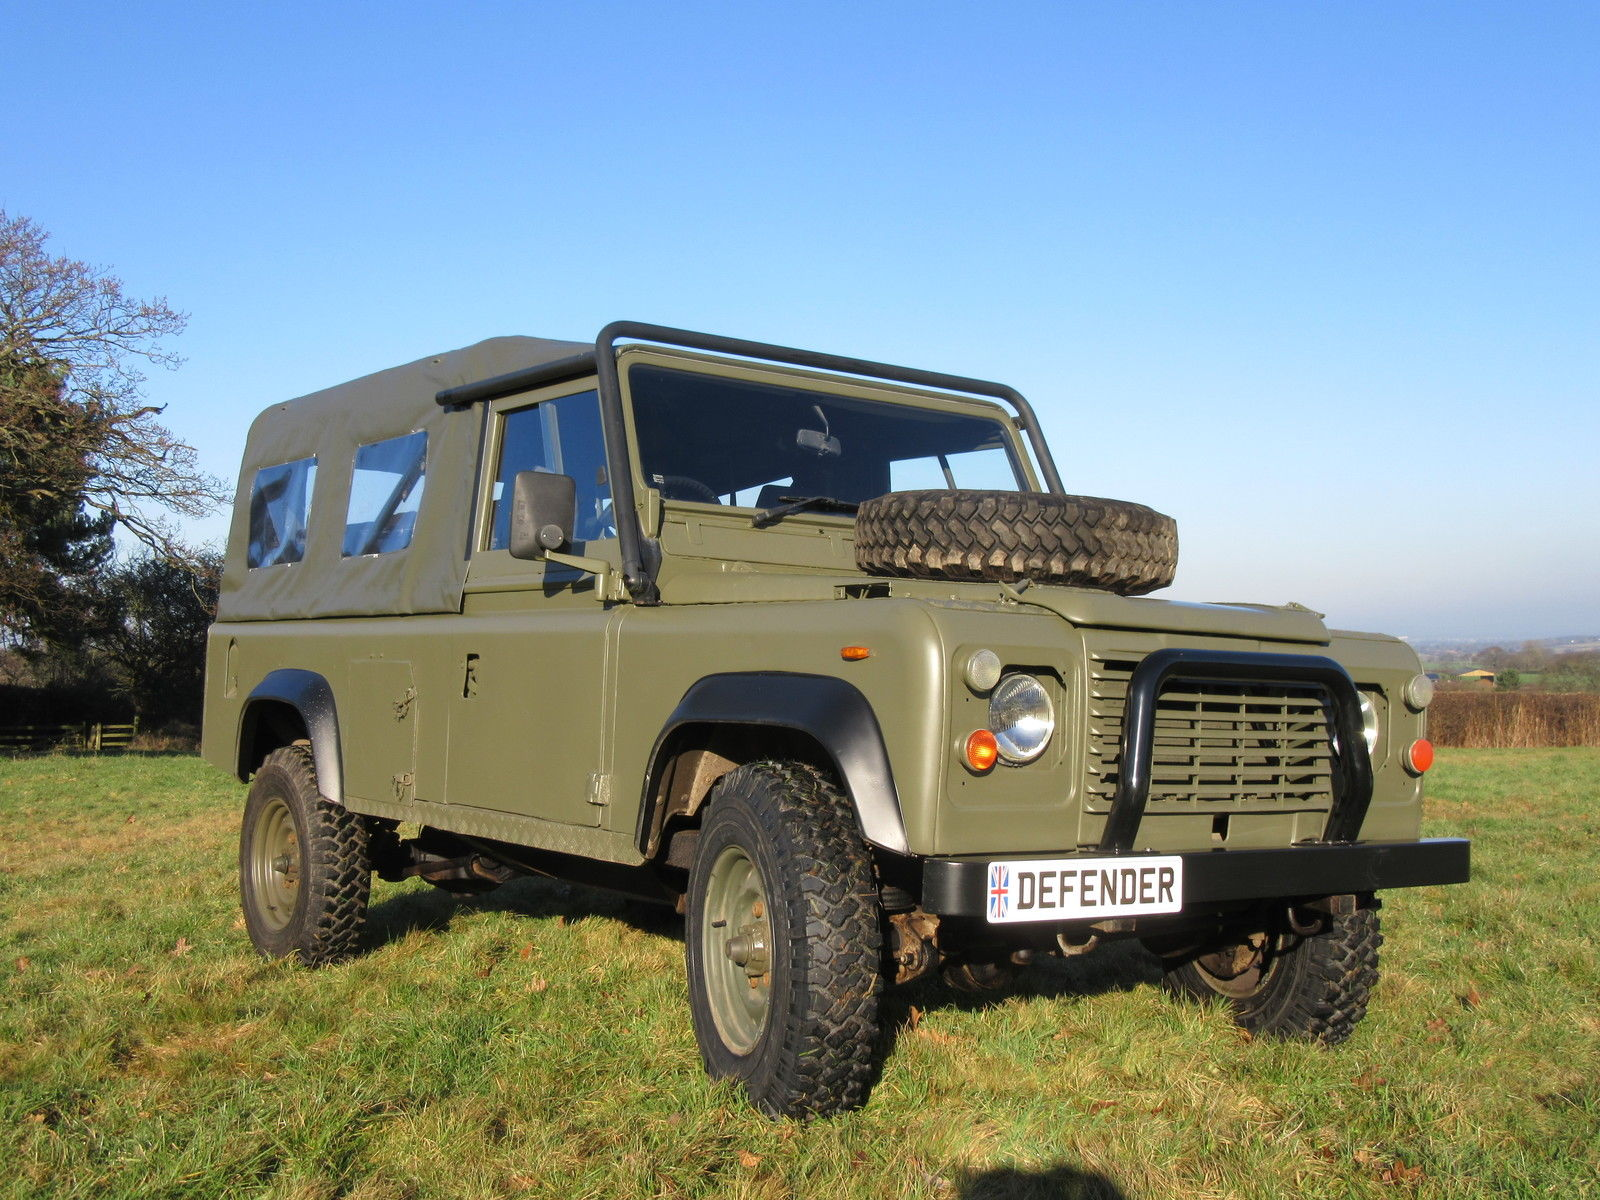 Used Land Rovers For Sale >> Military vehicle 1985 Land Rover Defender Exmoor offroad ...